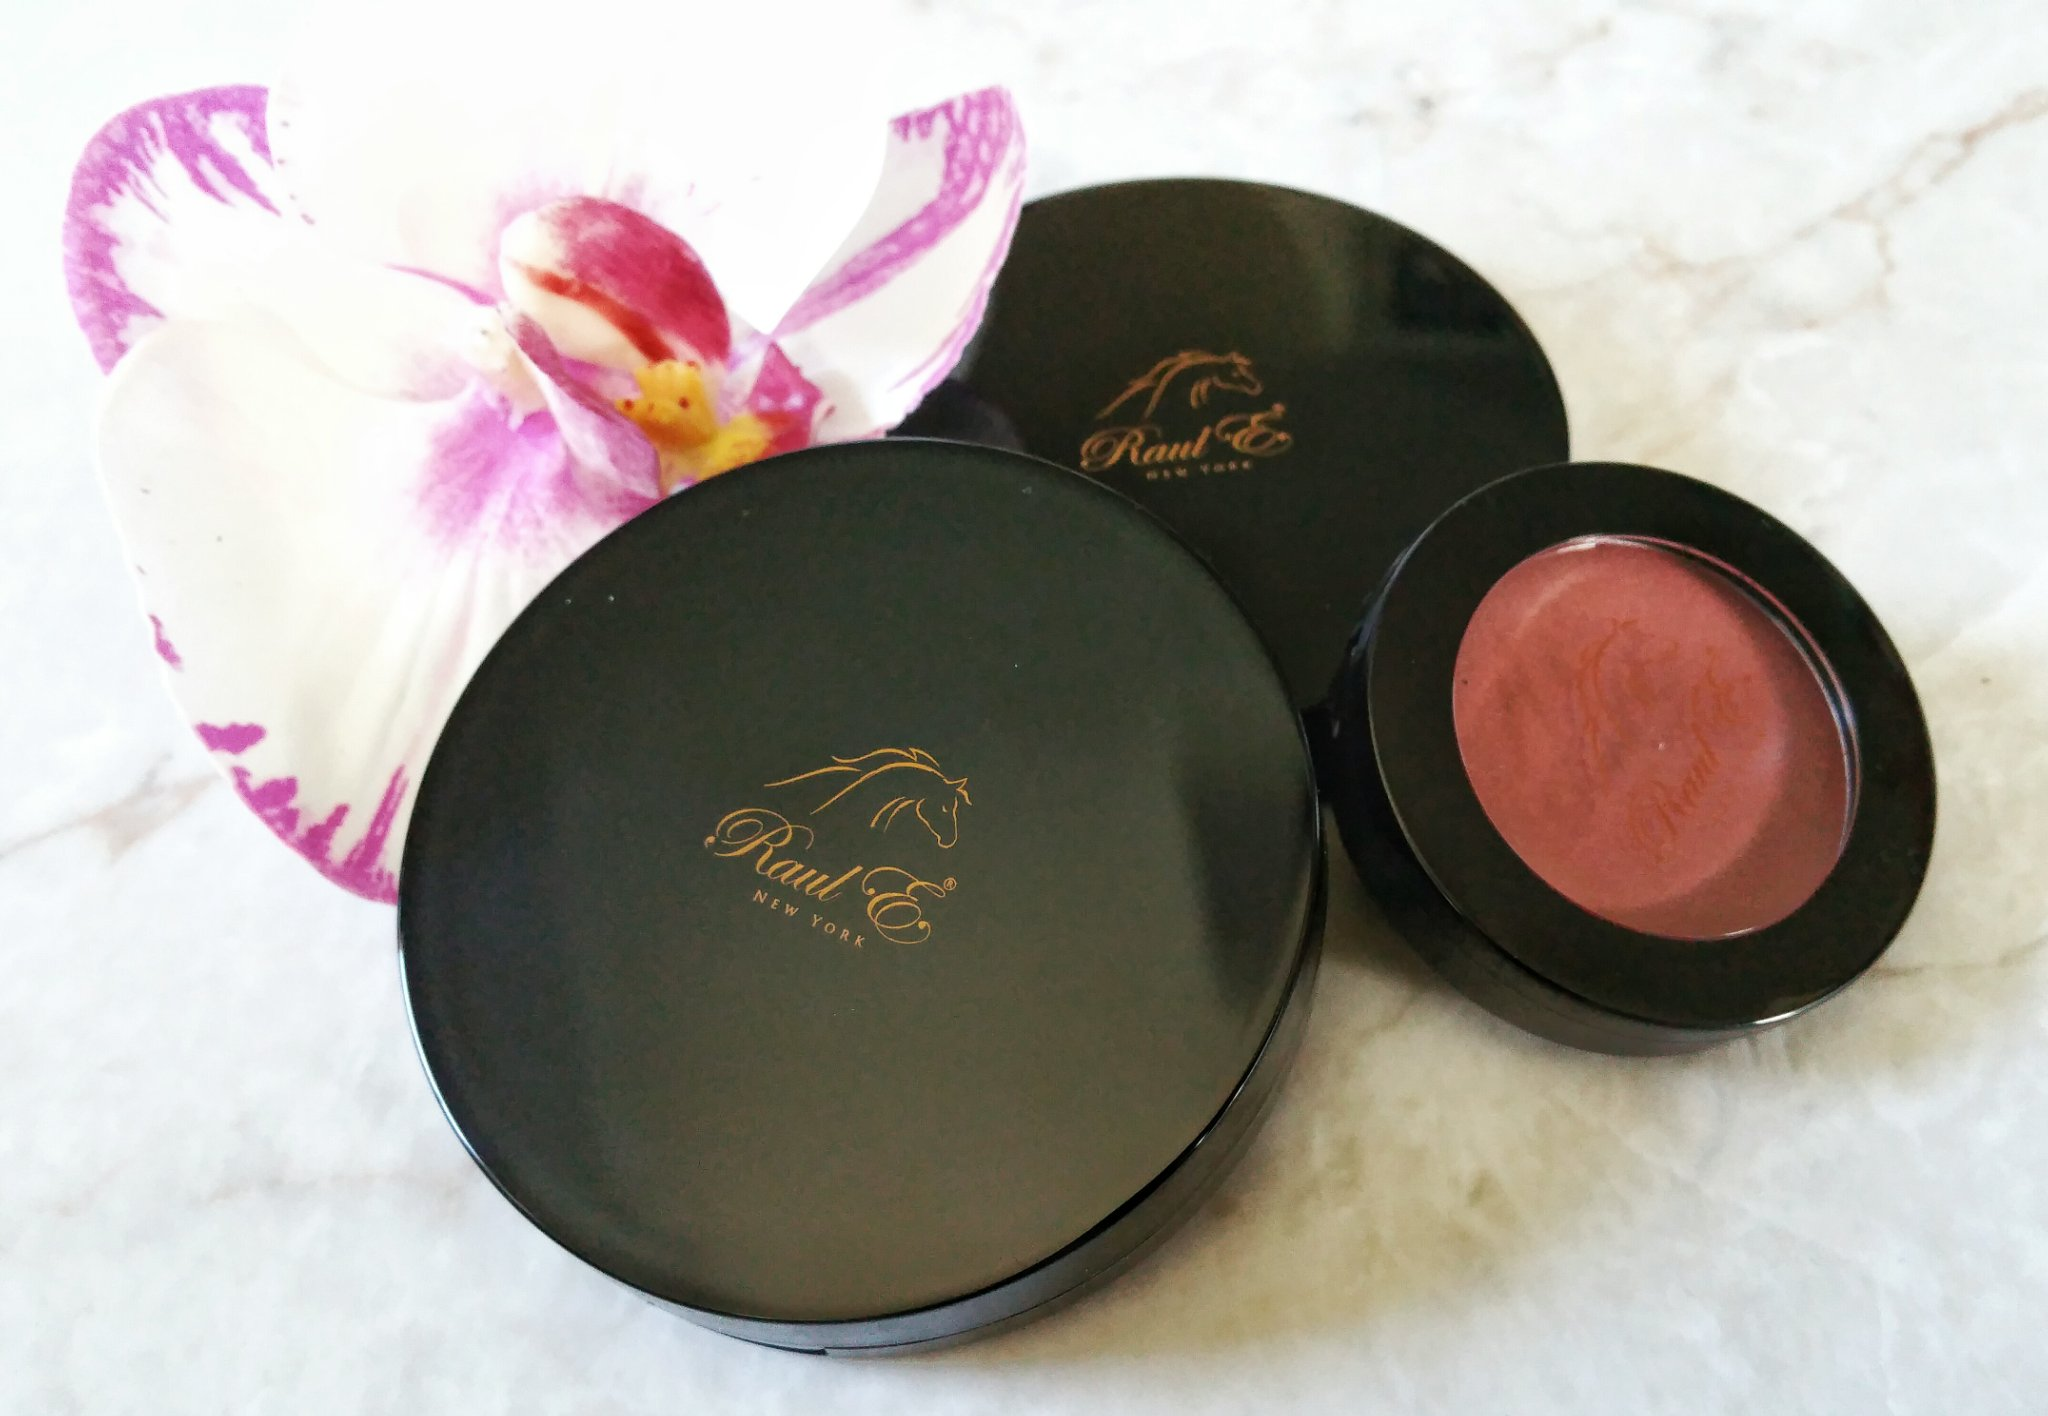 mineral cosmetics, makeup, cosmetics, beauty, swatches, Raul E New York, mineral cosmetics, mineral blush, mineral silk radiance powder, eye shadow quad, mineral eye shadow quad, makeup review, beauty review, highend makeup, luxury makeup,